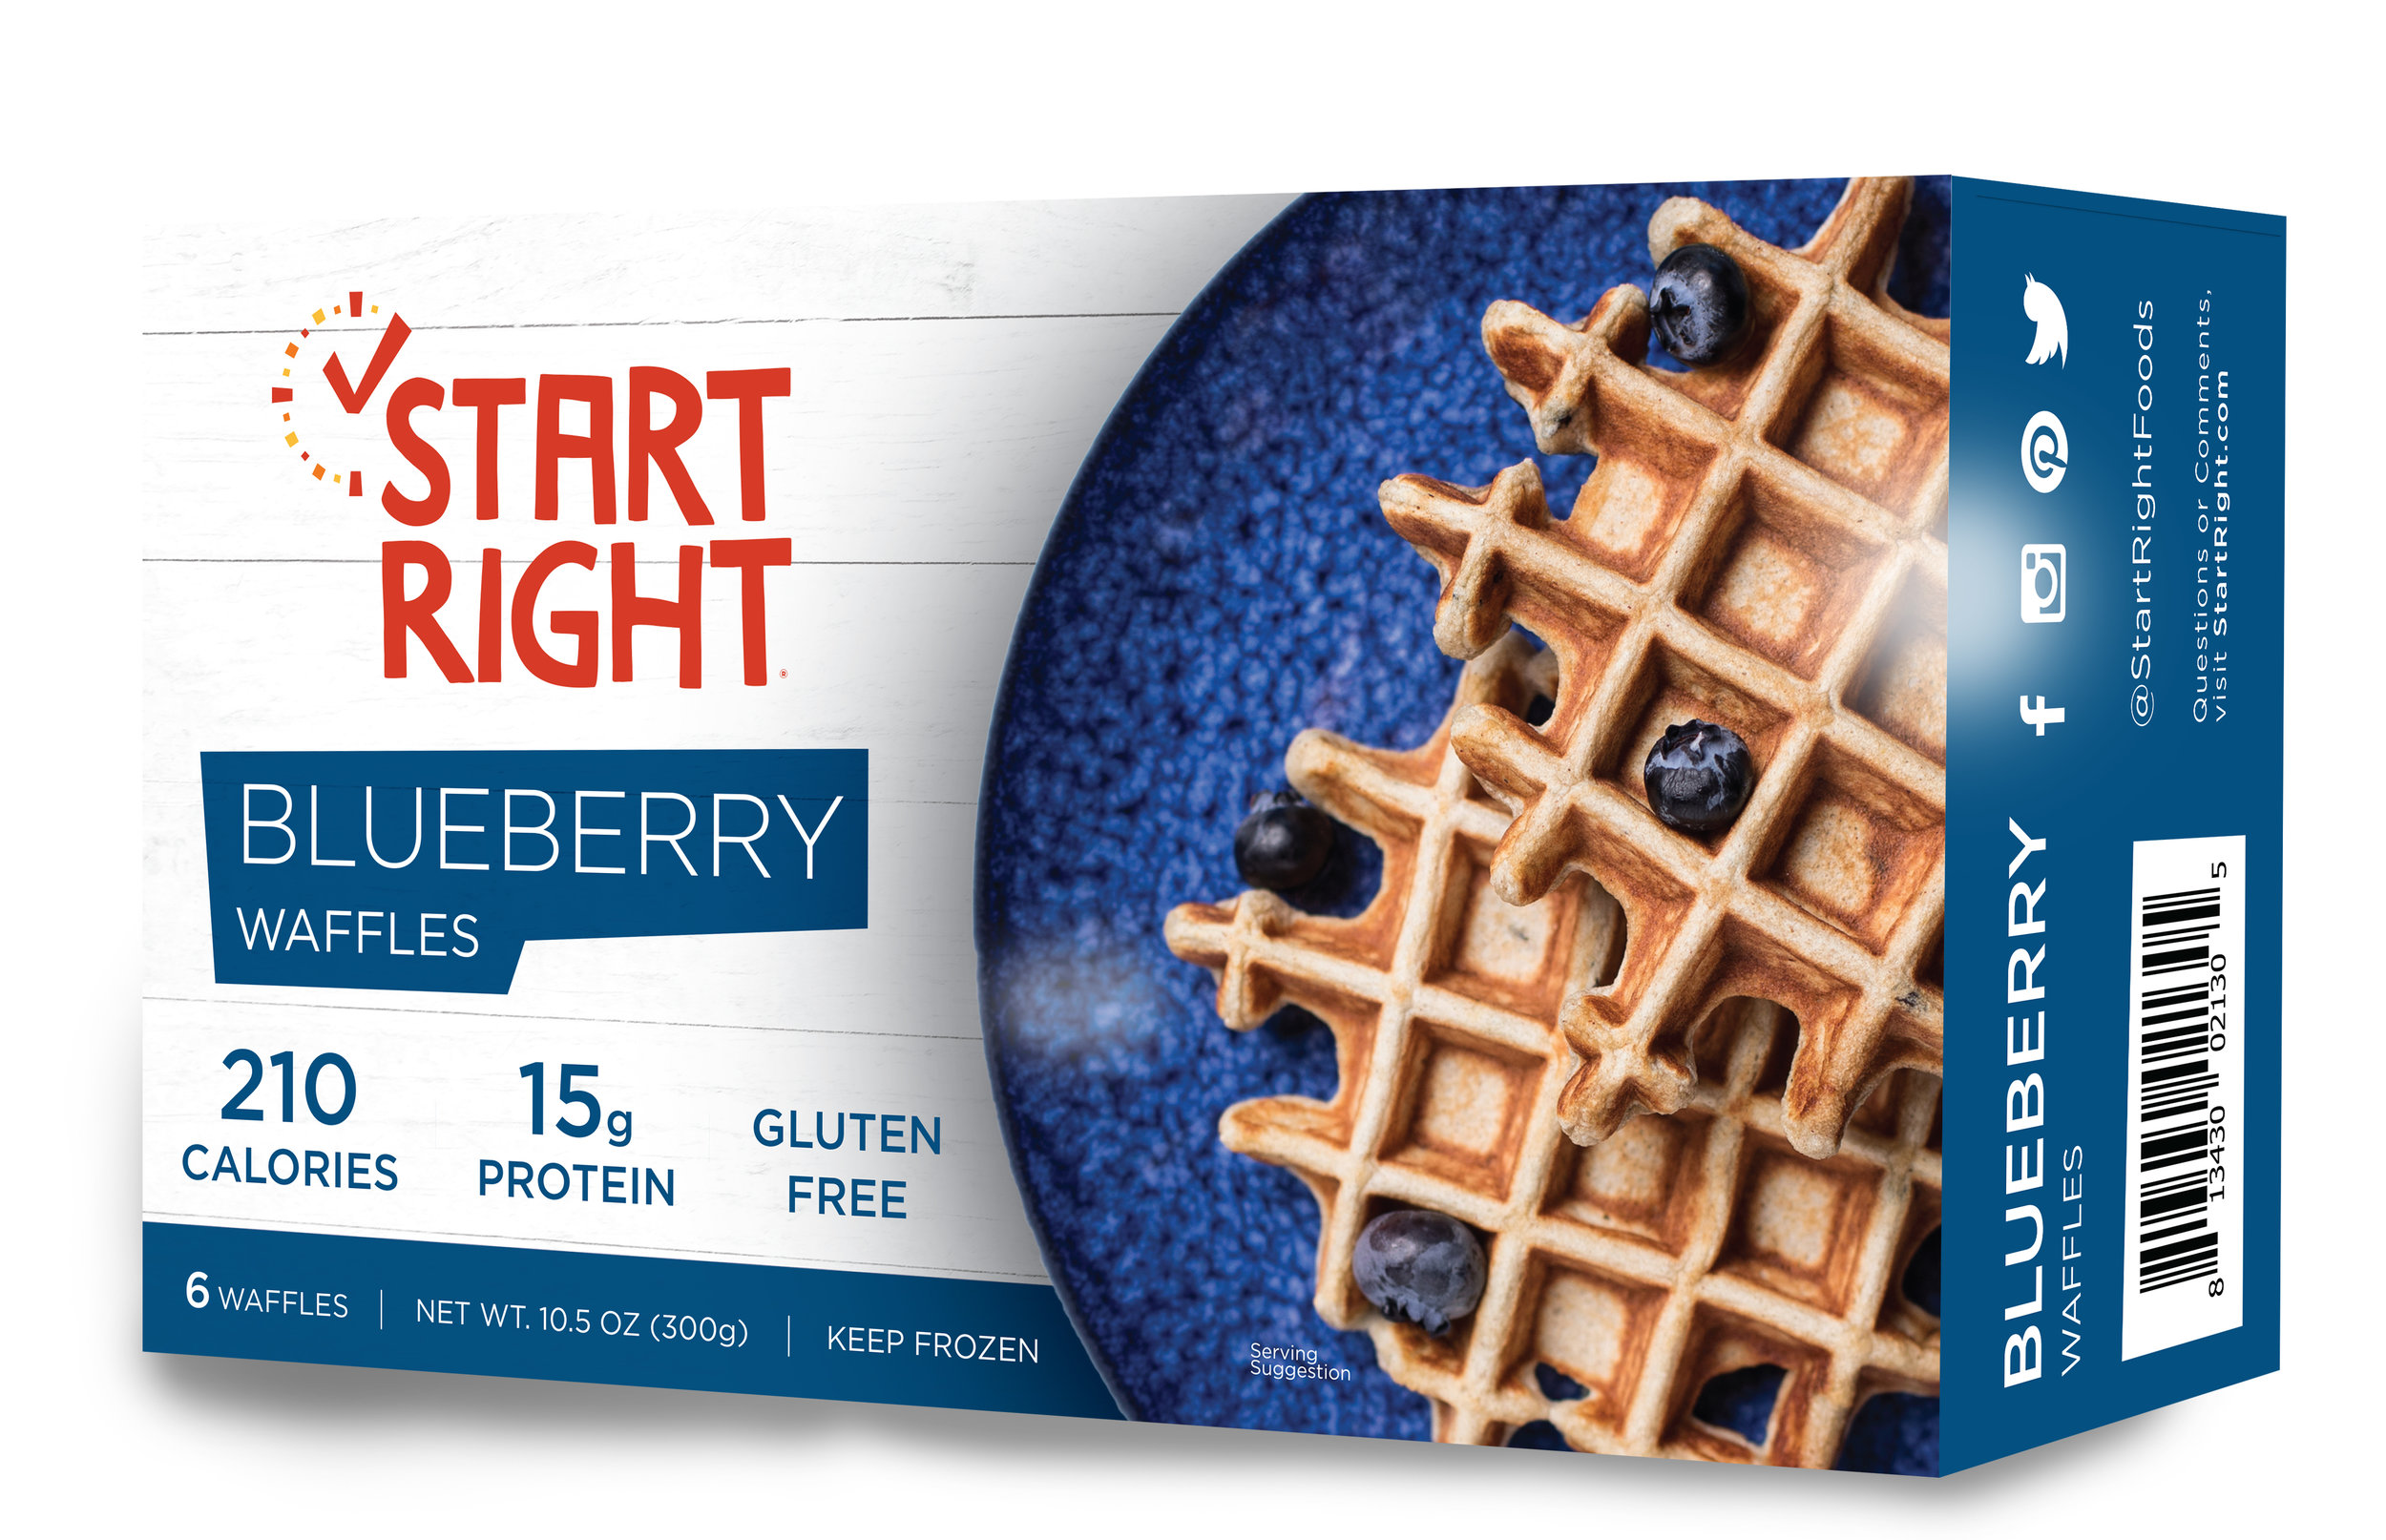 Blueberry Waffles, protein waffles, high protein blueberry waffles, high protein toaster waffles, Belgian waffles, protein frozen waffles, frozen protein waffles, gluten free waffles, gluten free frozen waffles